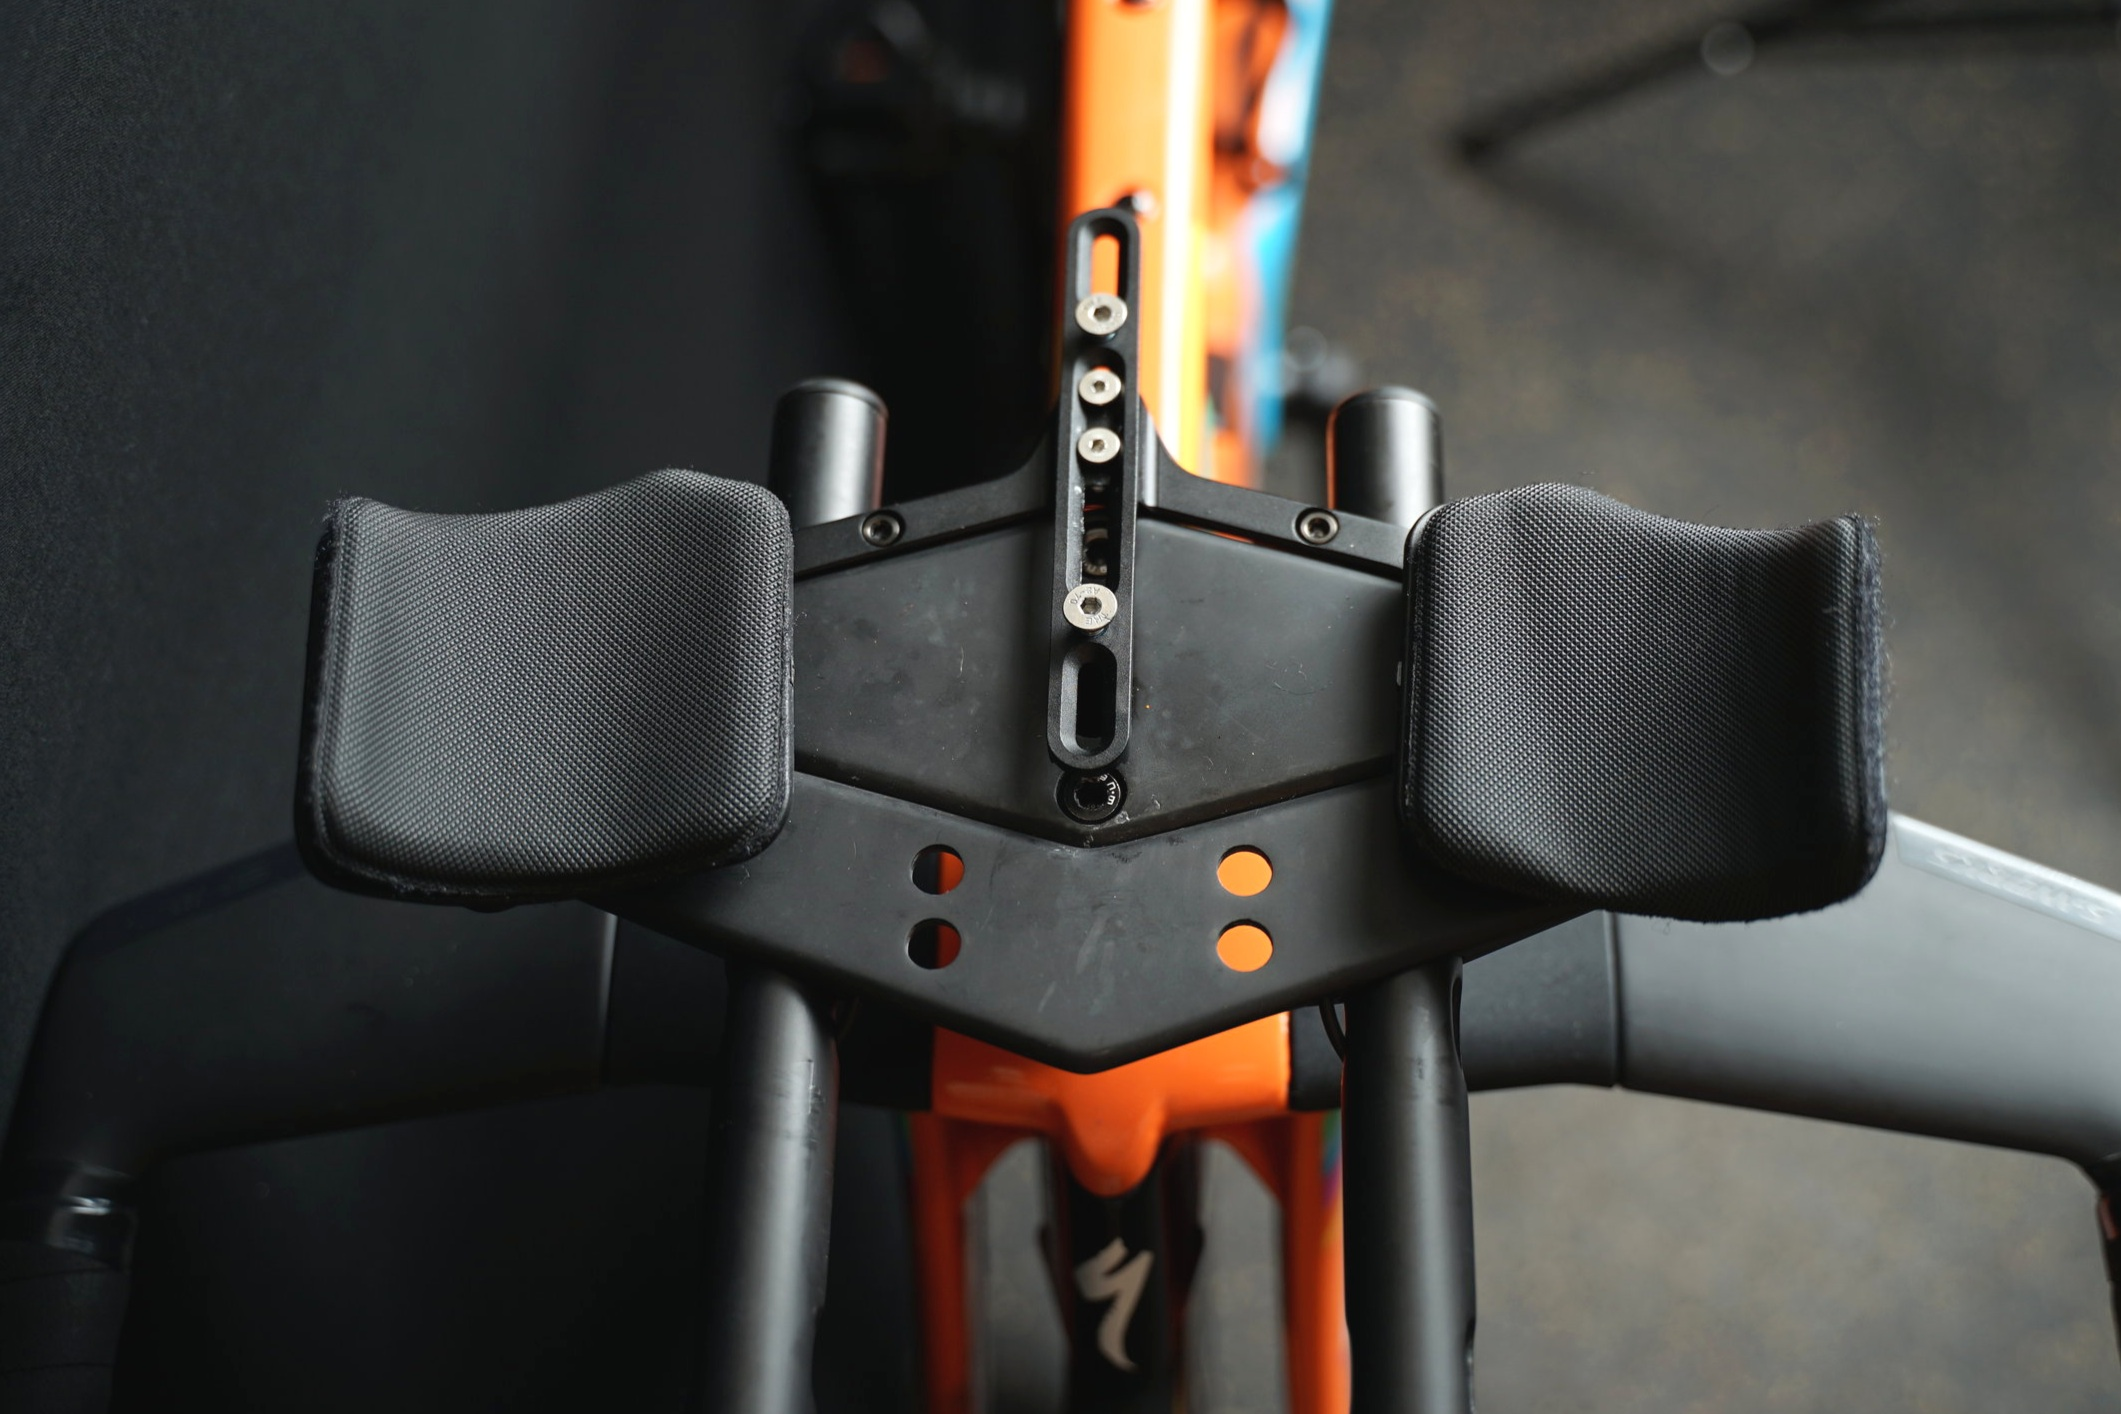 The water bottle cage holder can mount to either the front or the back of the wing, and then it has a sliding adjust-ability from there to position the bottle either closer or farther from you. Can also be used for a computer mount instead of a bottle cage.